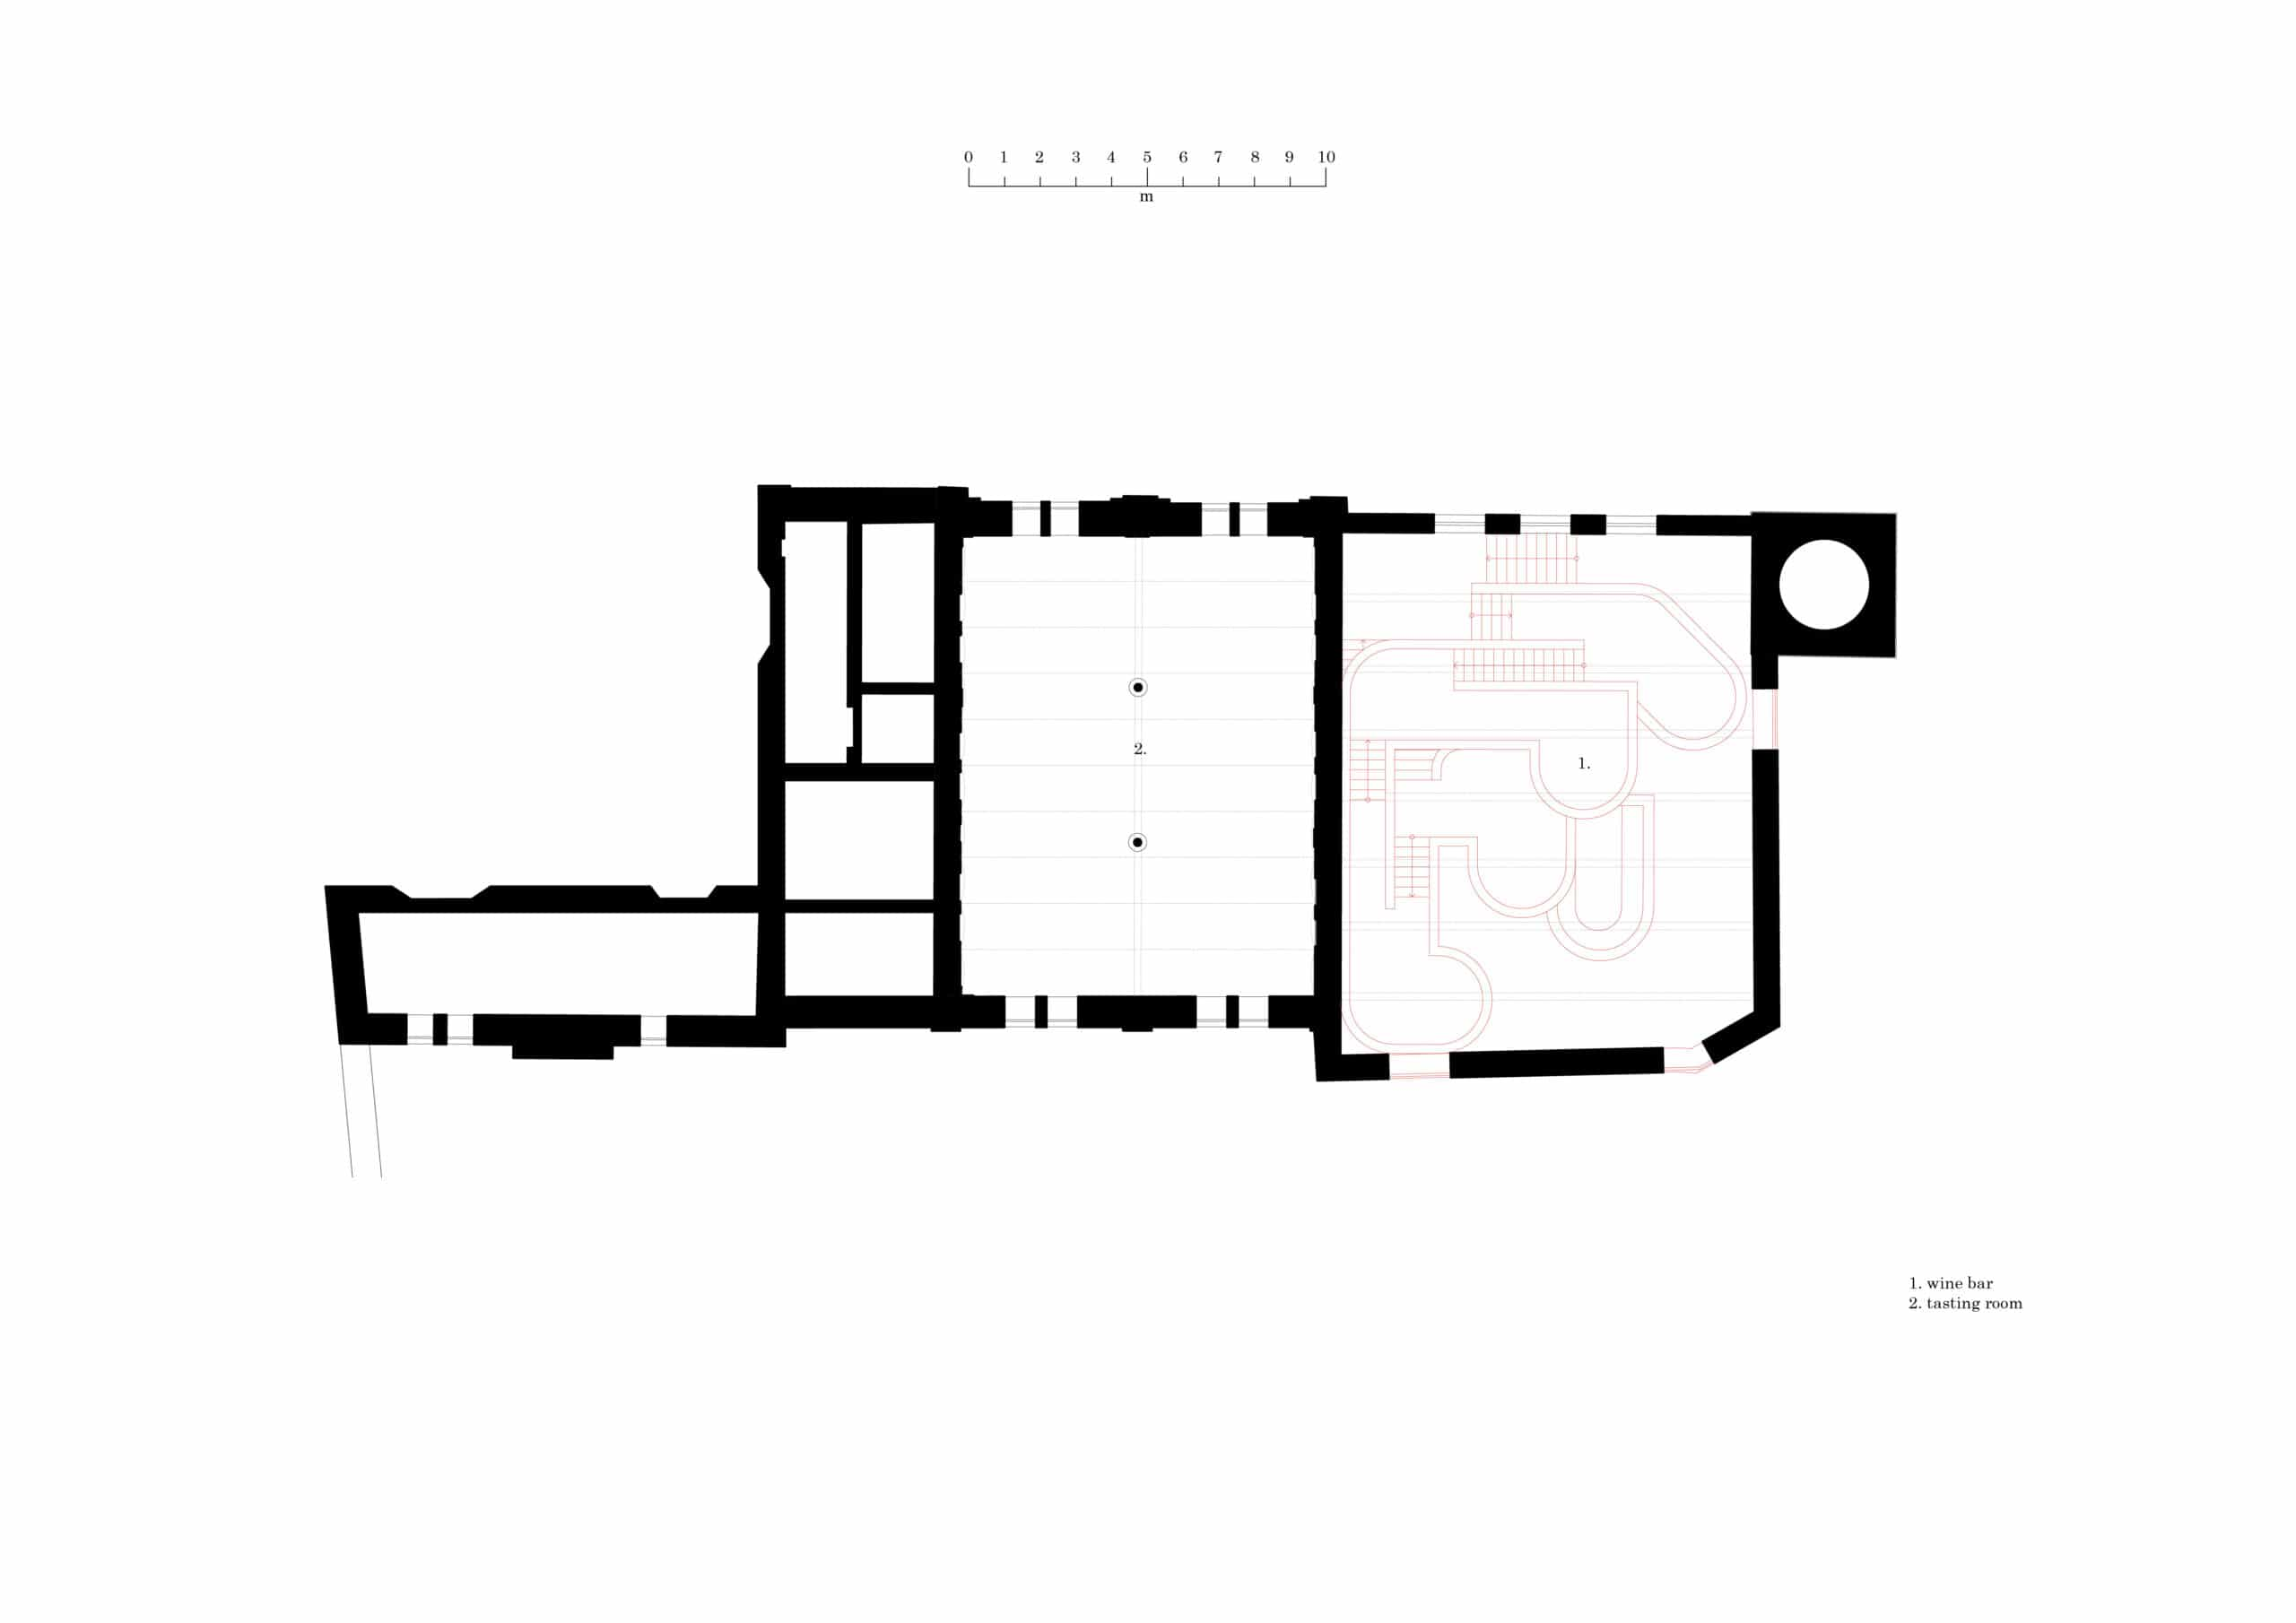 House of Wine  - 09 Chybik Kristof HoW floorplan scaled 73